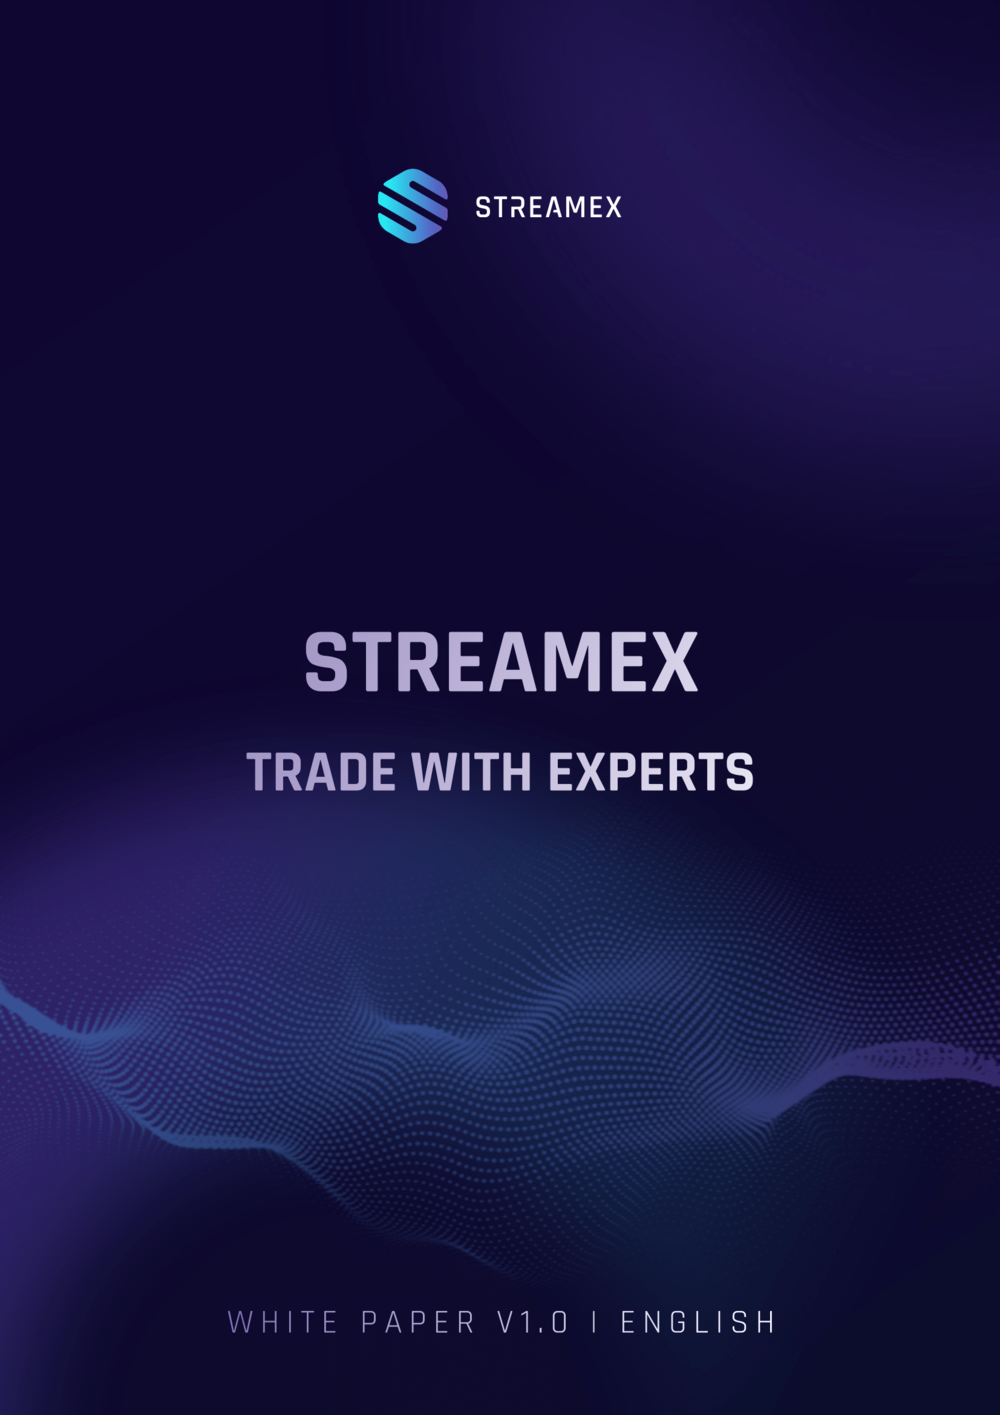 Streamex Crypto Exchange White Paper